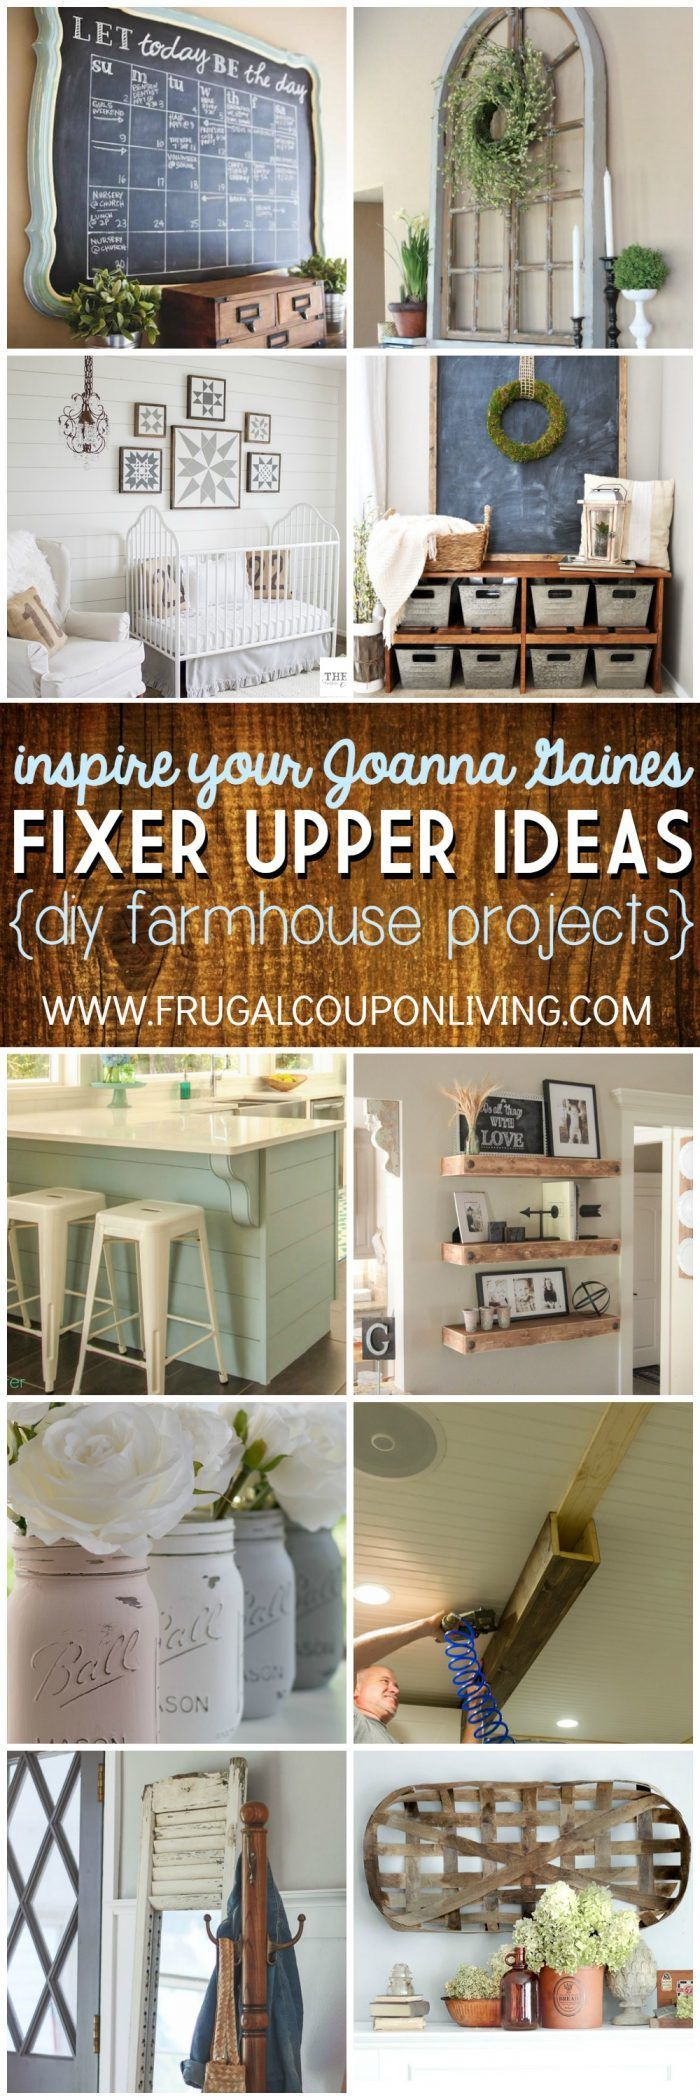 Joanna gaines hallway ideas   best Home decor images on Pinterest  Bathrooms Decorations and